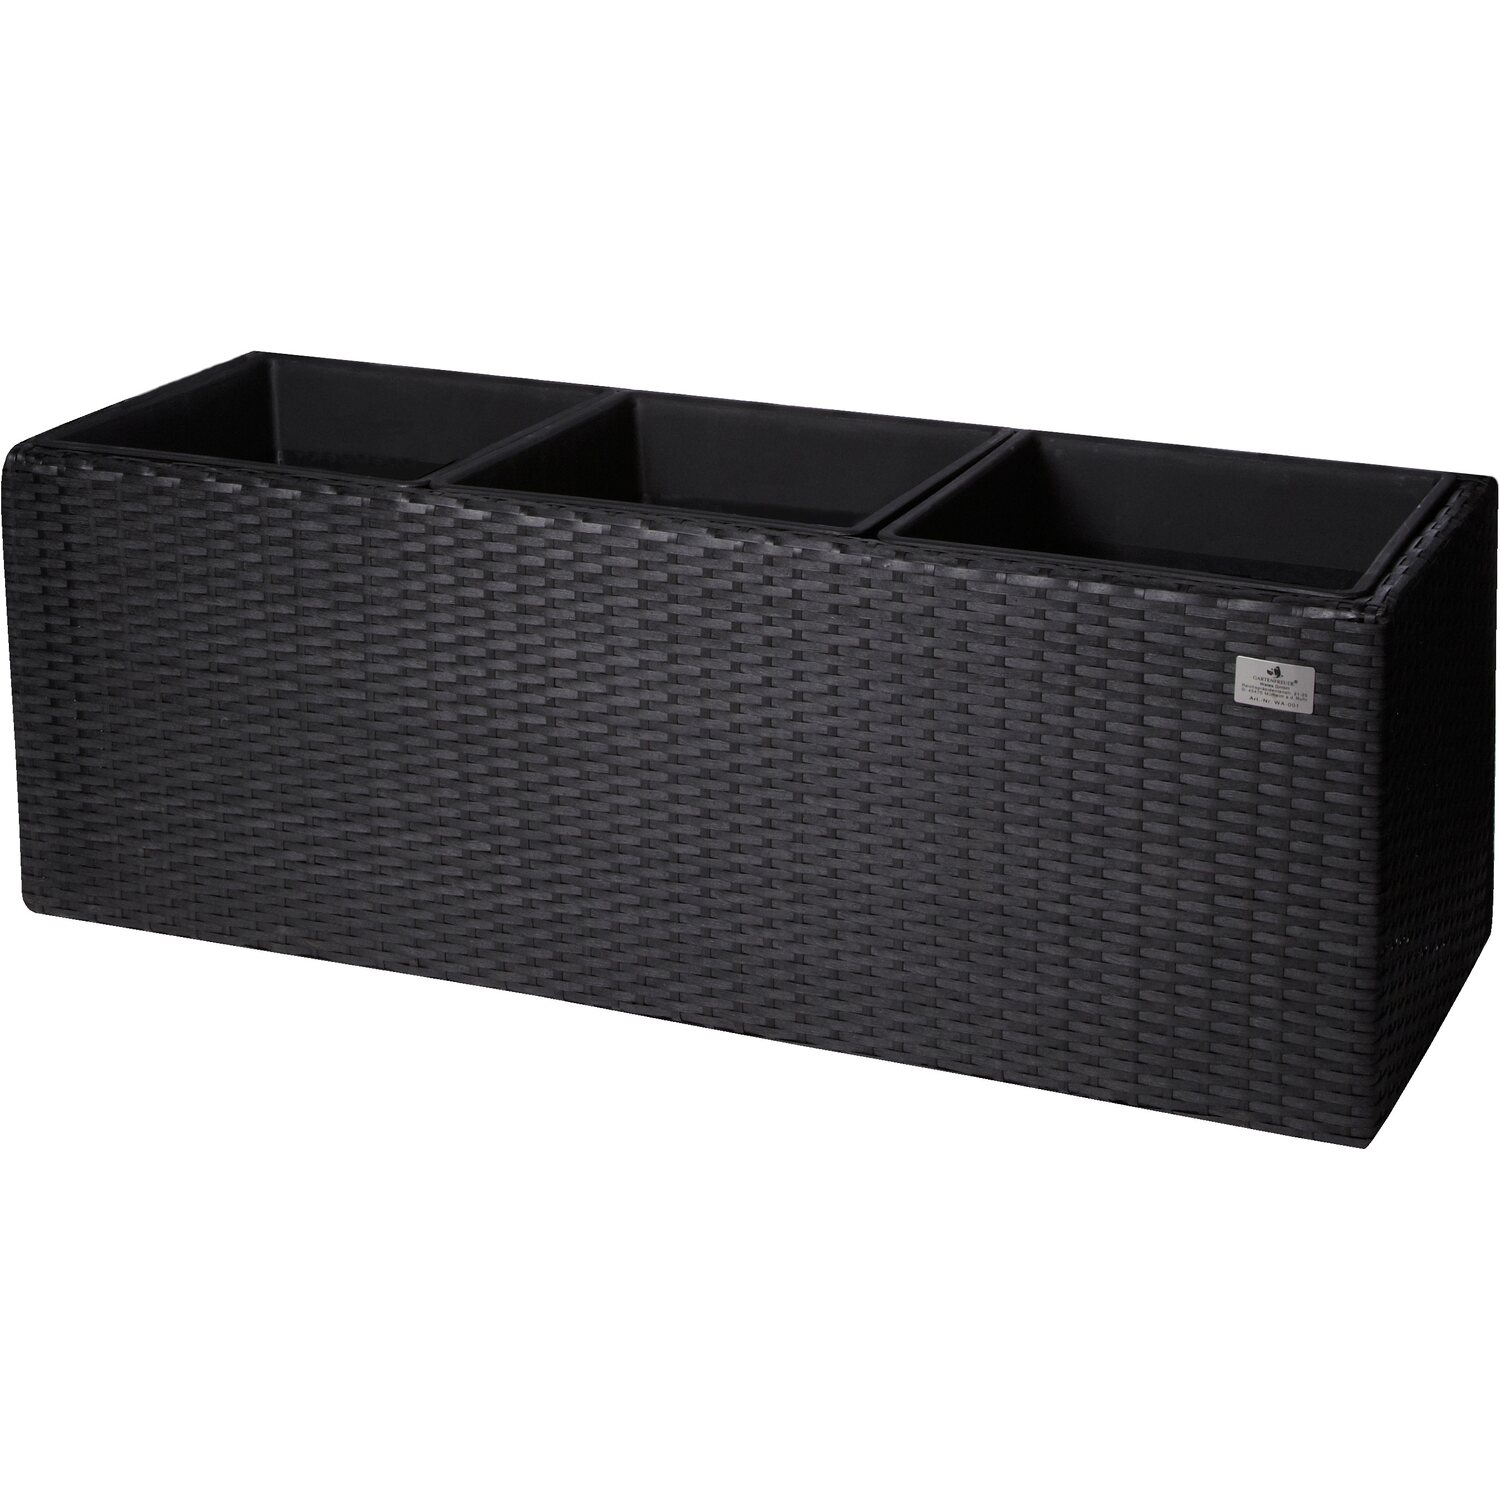 gartenfreude pflanzk bel polyrattan 76 cm x 26 cm anthrazit kaufen bei obi. Black Bedroom Furniture Sets. Home Design Ideas